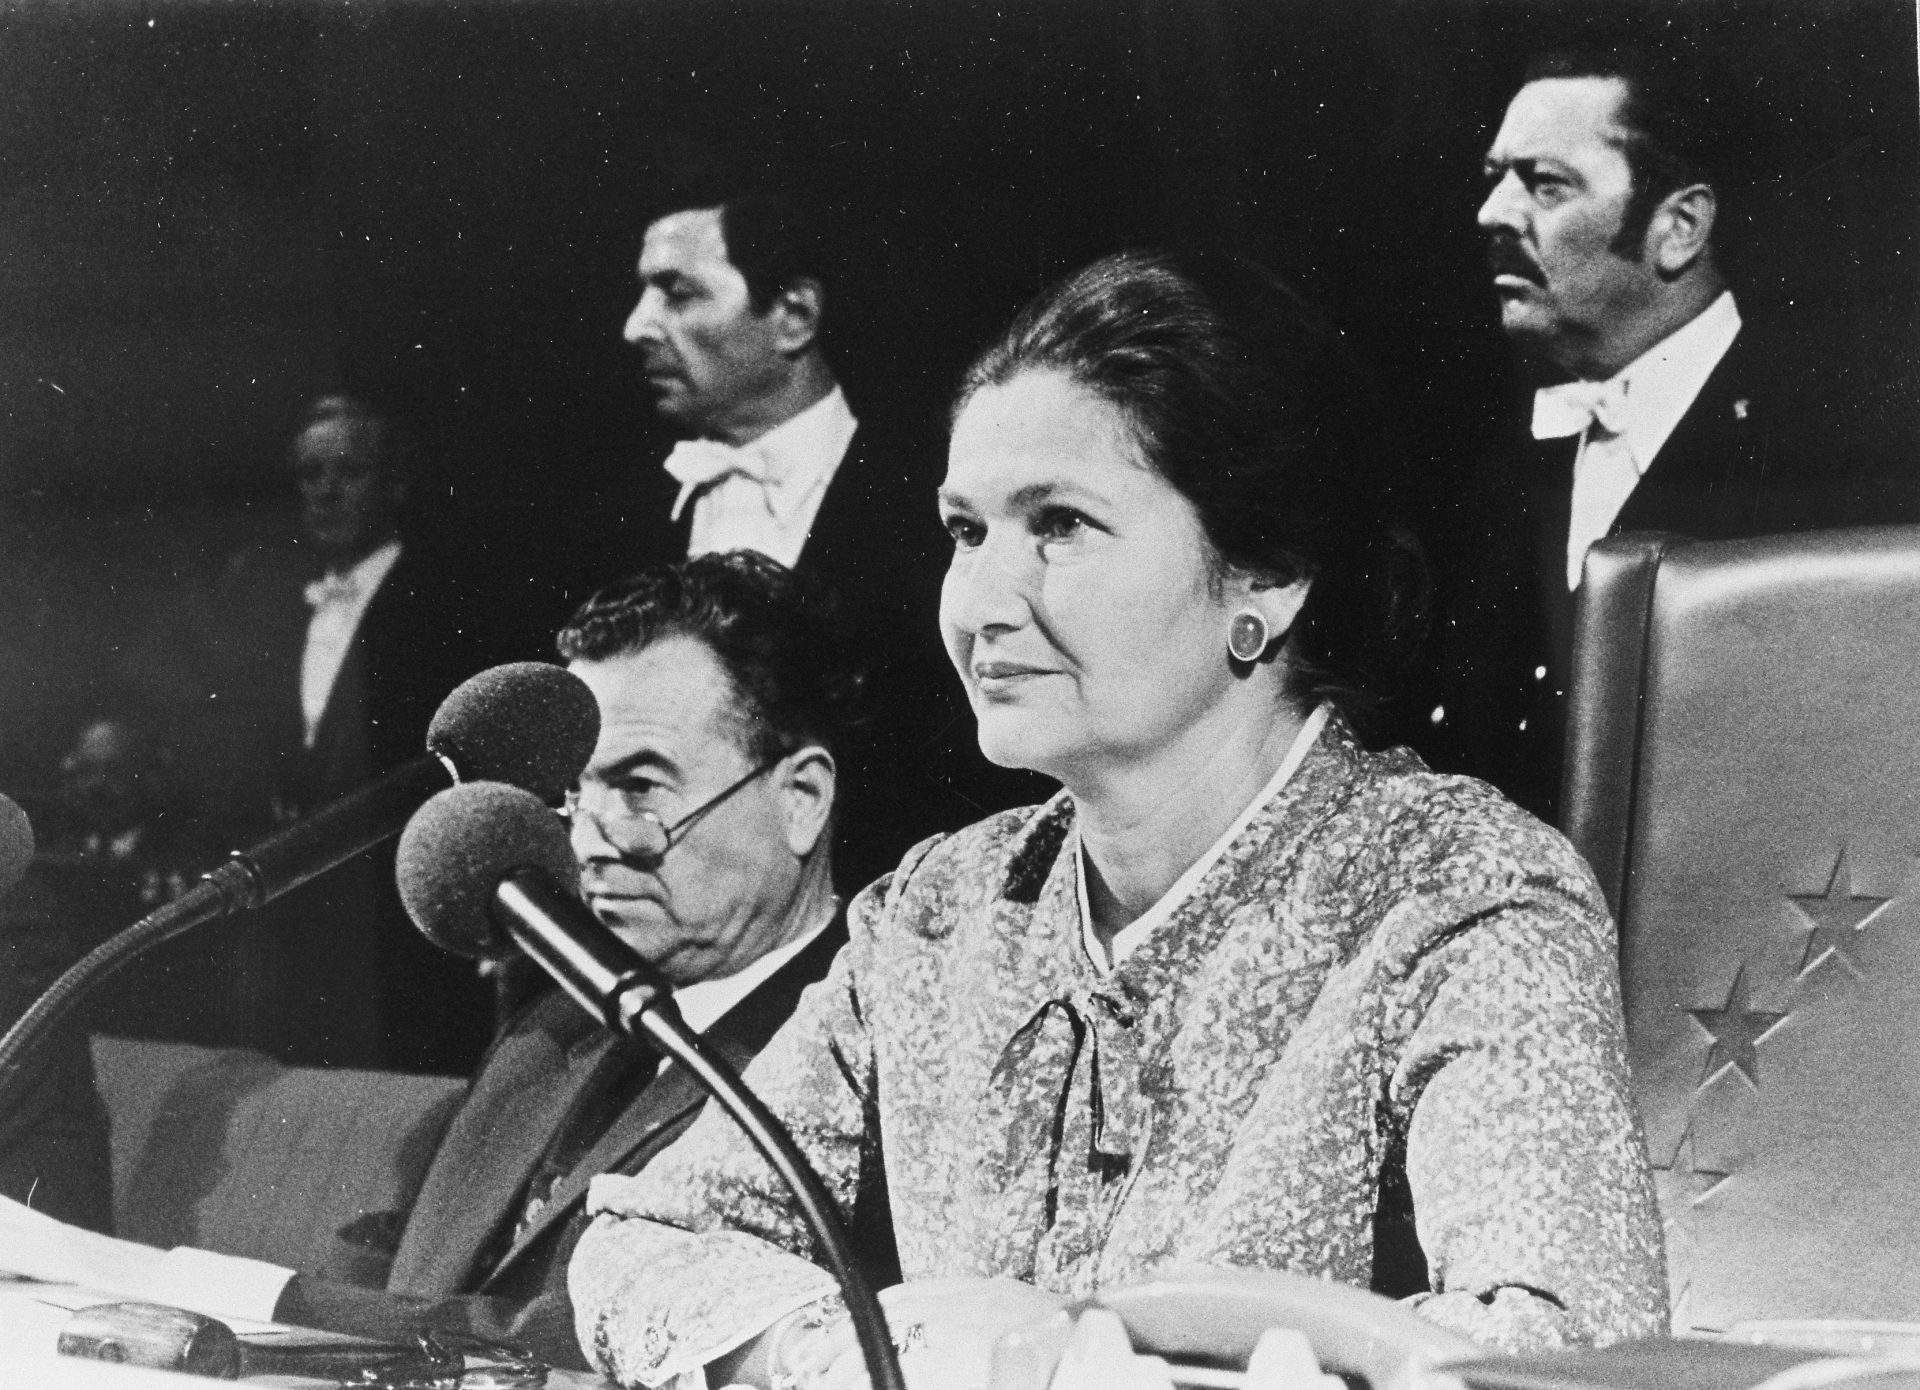 Founder And First President Of ECAS – Simone Veil – Given Honourable Burial In Pantheon